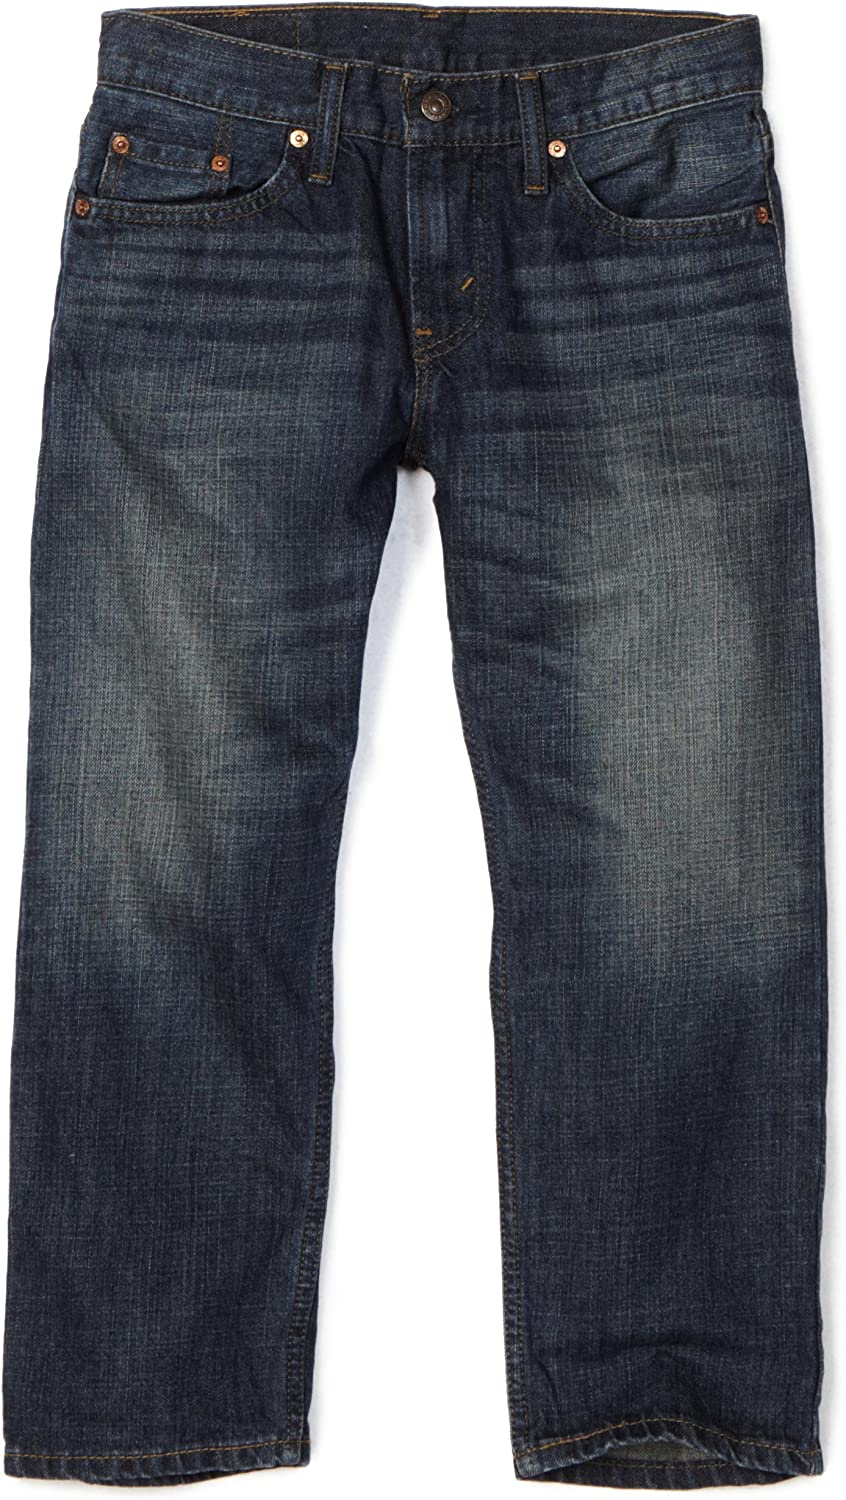 Levi's Boys' 505 Regular Fit Jeans: Clothing